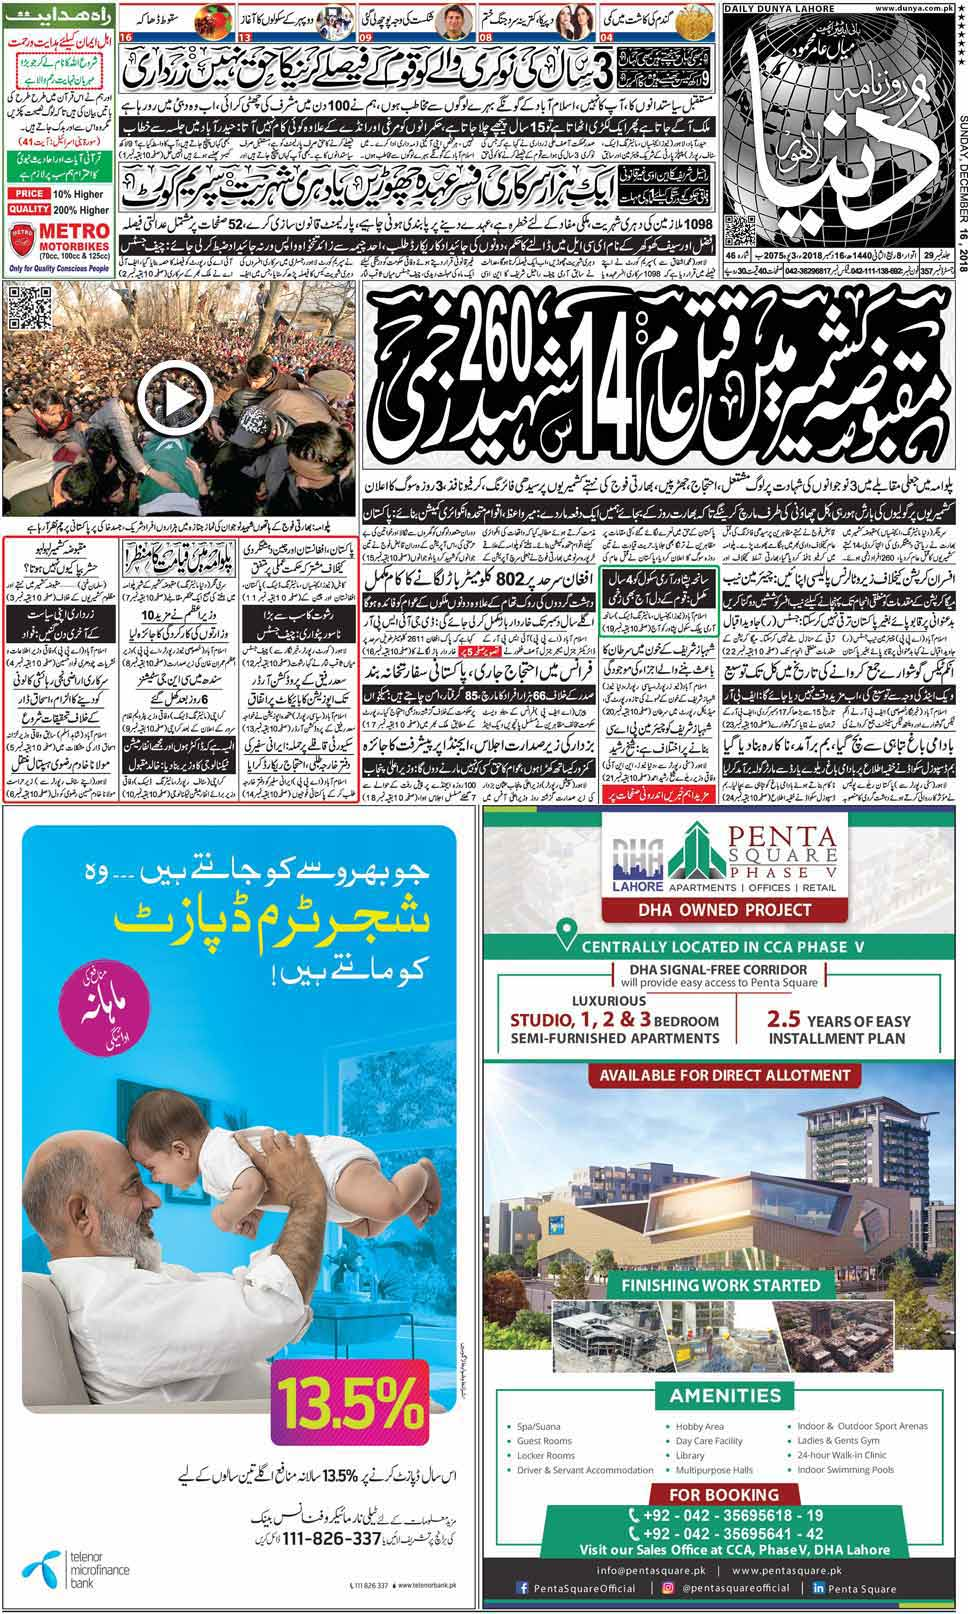 Dunya news paperwritings and papers | writings and papers.